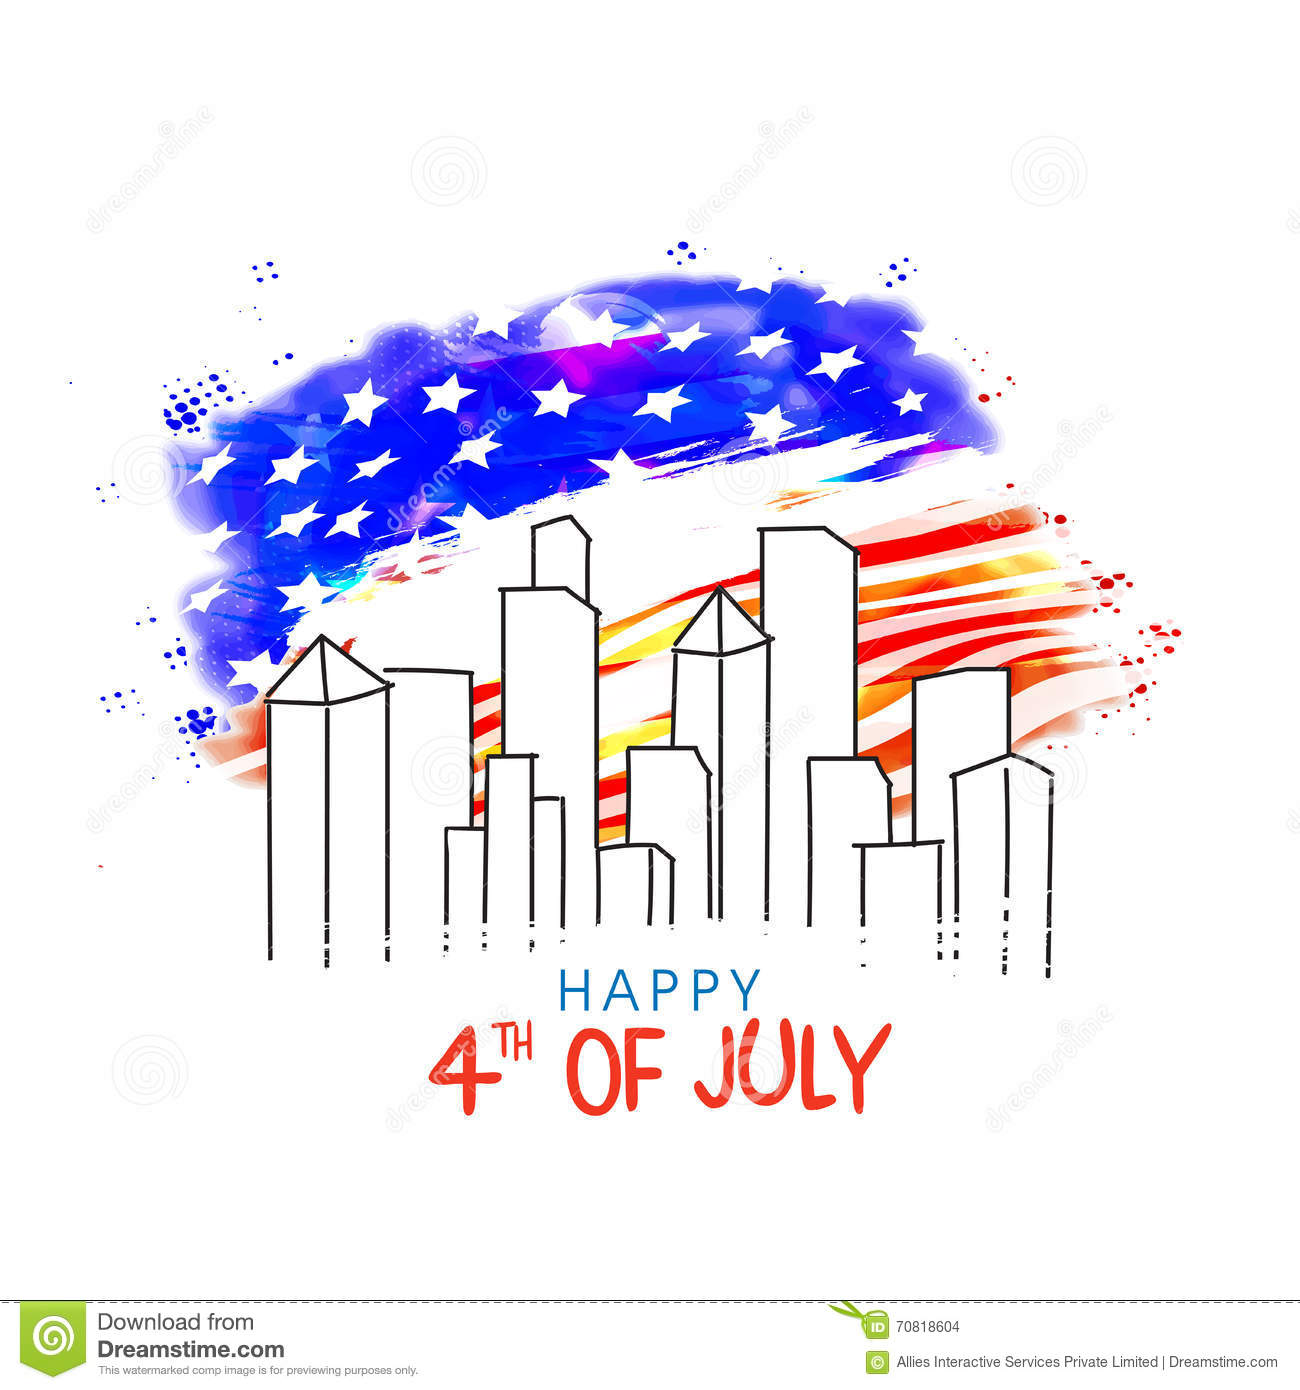 Poster banner or flyer for 4th july celebration stock for Th background color